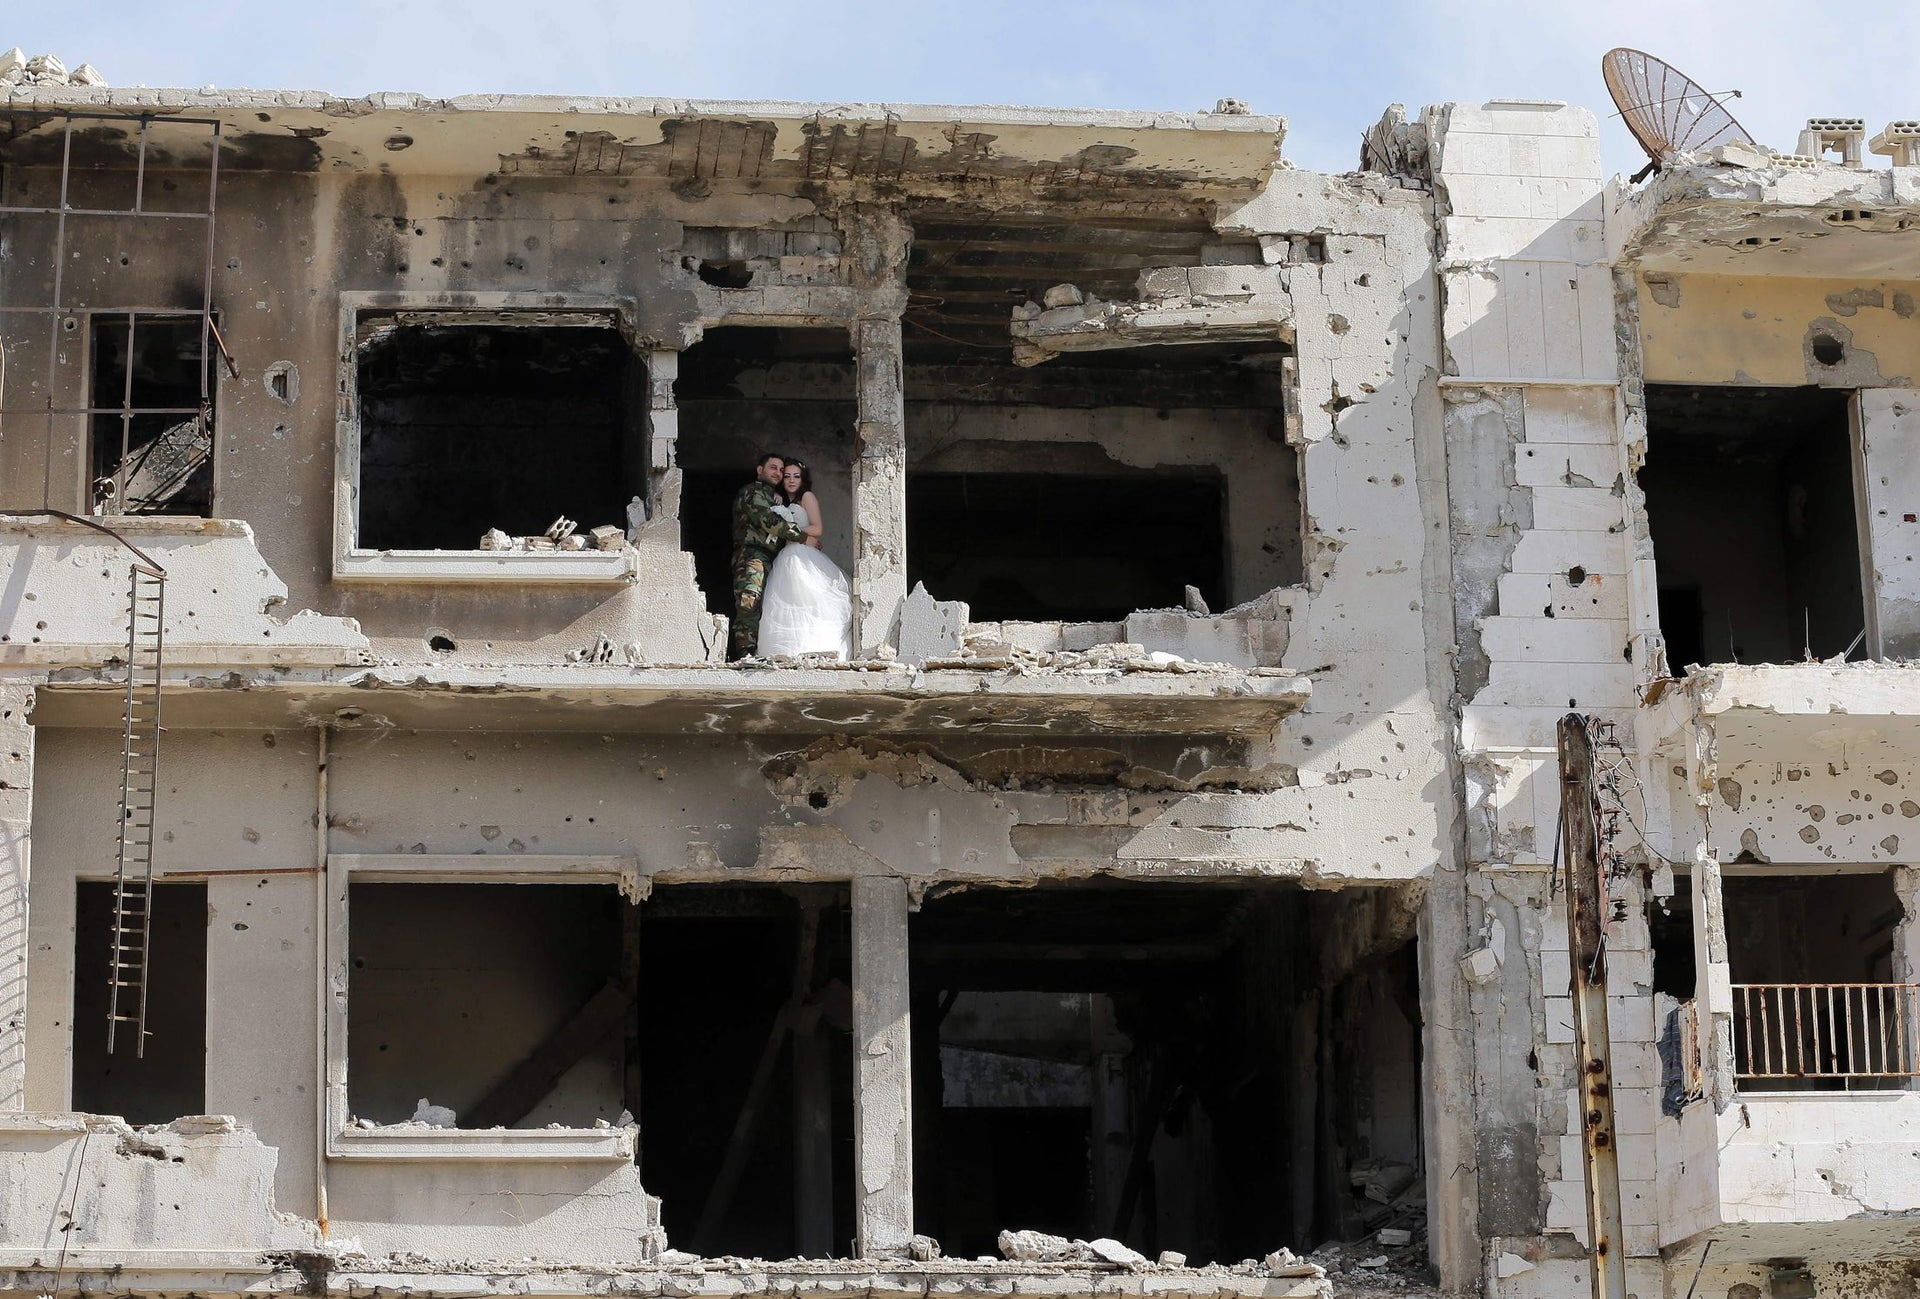 A shelled building in Homs, Syria, serves as the surprising setting for Nada Merhi and Hassan Youssef's wedding photos on February 5, 2016.